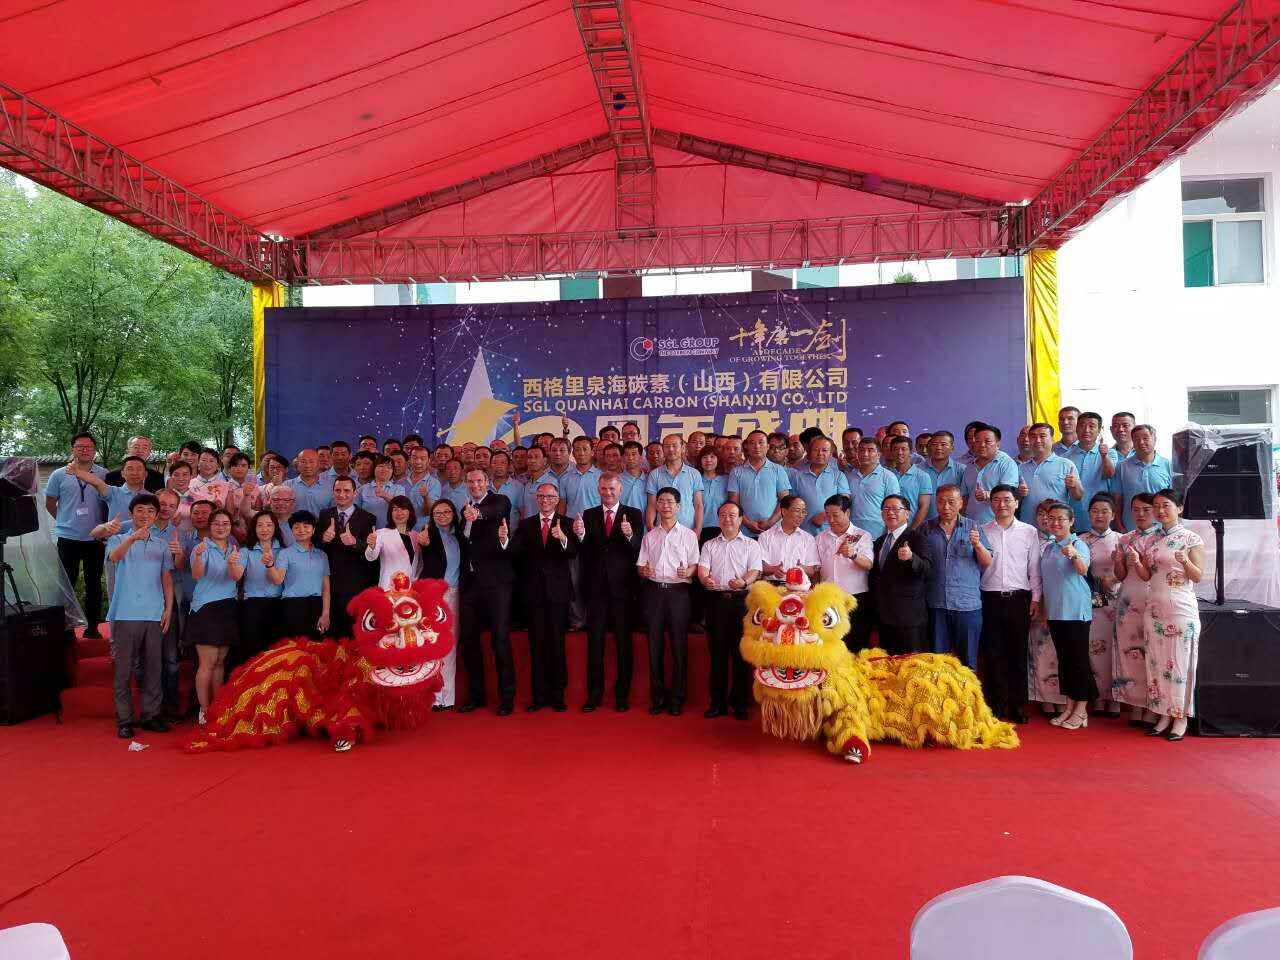 SGL Group invests in rigid felt production in China, and celebrates the tenth anniversary of its joint venture